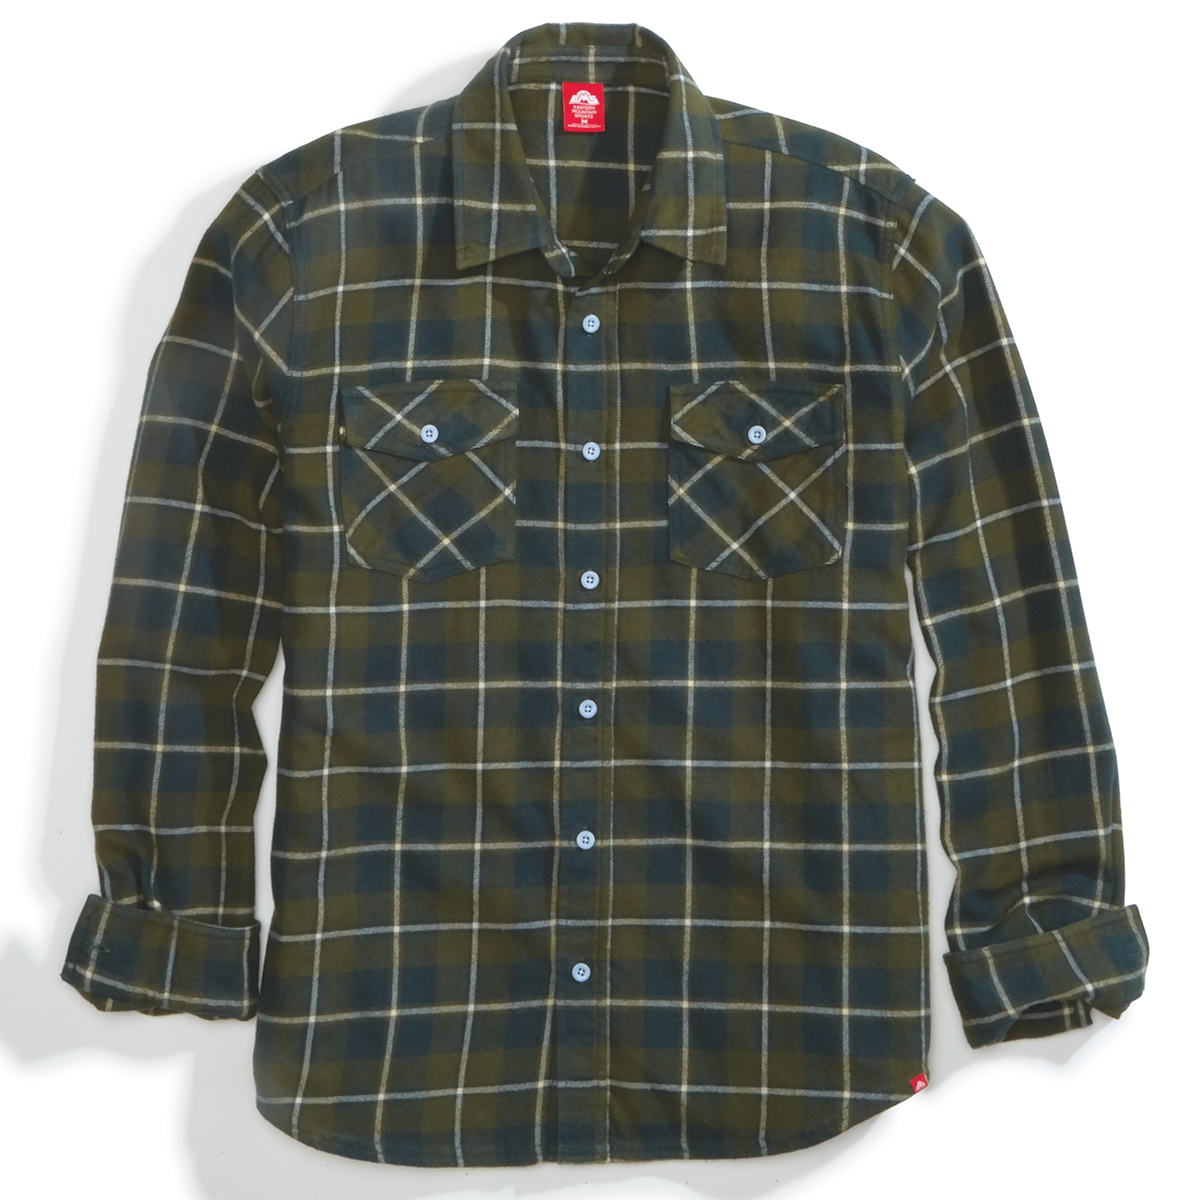 Ems Men's Timber Flannel Long-Sleeve Shirt - Green, S